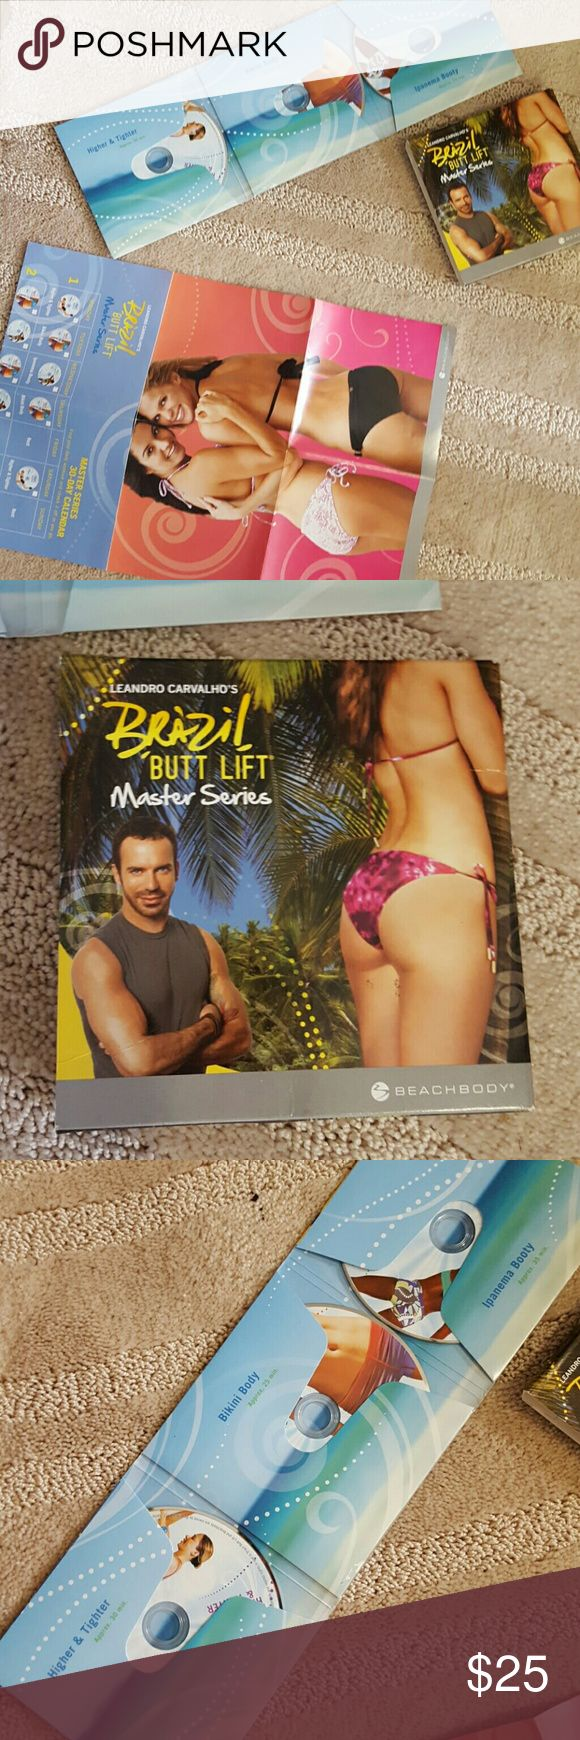 Brazilian butt lift master series DVDs Brazil bum workout  Three DVDs and a poster / calander  Master series beach body bum workout DVD Let me know if you have any questions   ** Price Negotiations Through Offer Button Feature Only ** be sure to check out the rest of my listings, and bundle to save ! Xo PINK Victoria's Secret Tops